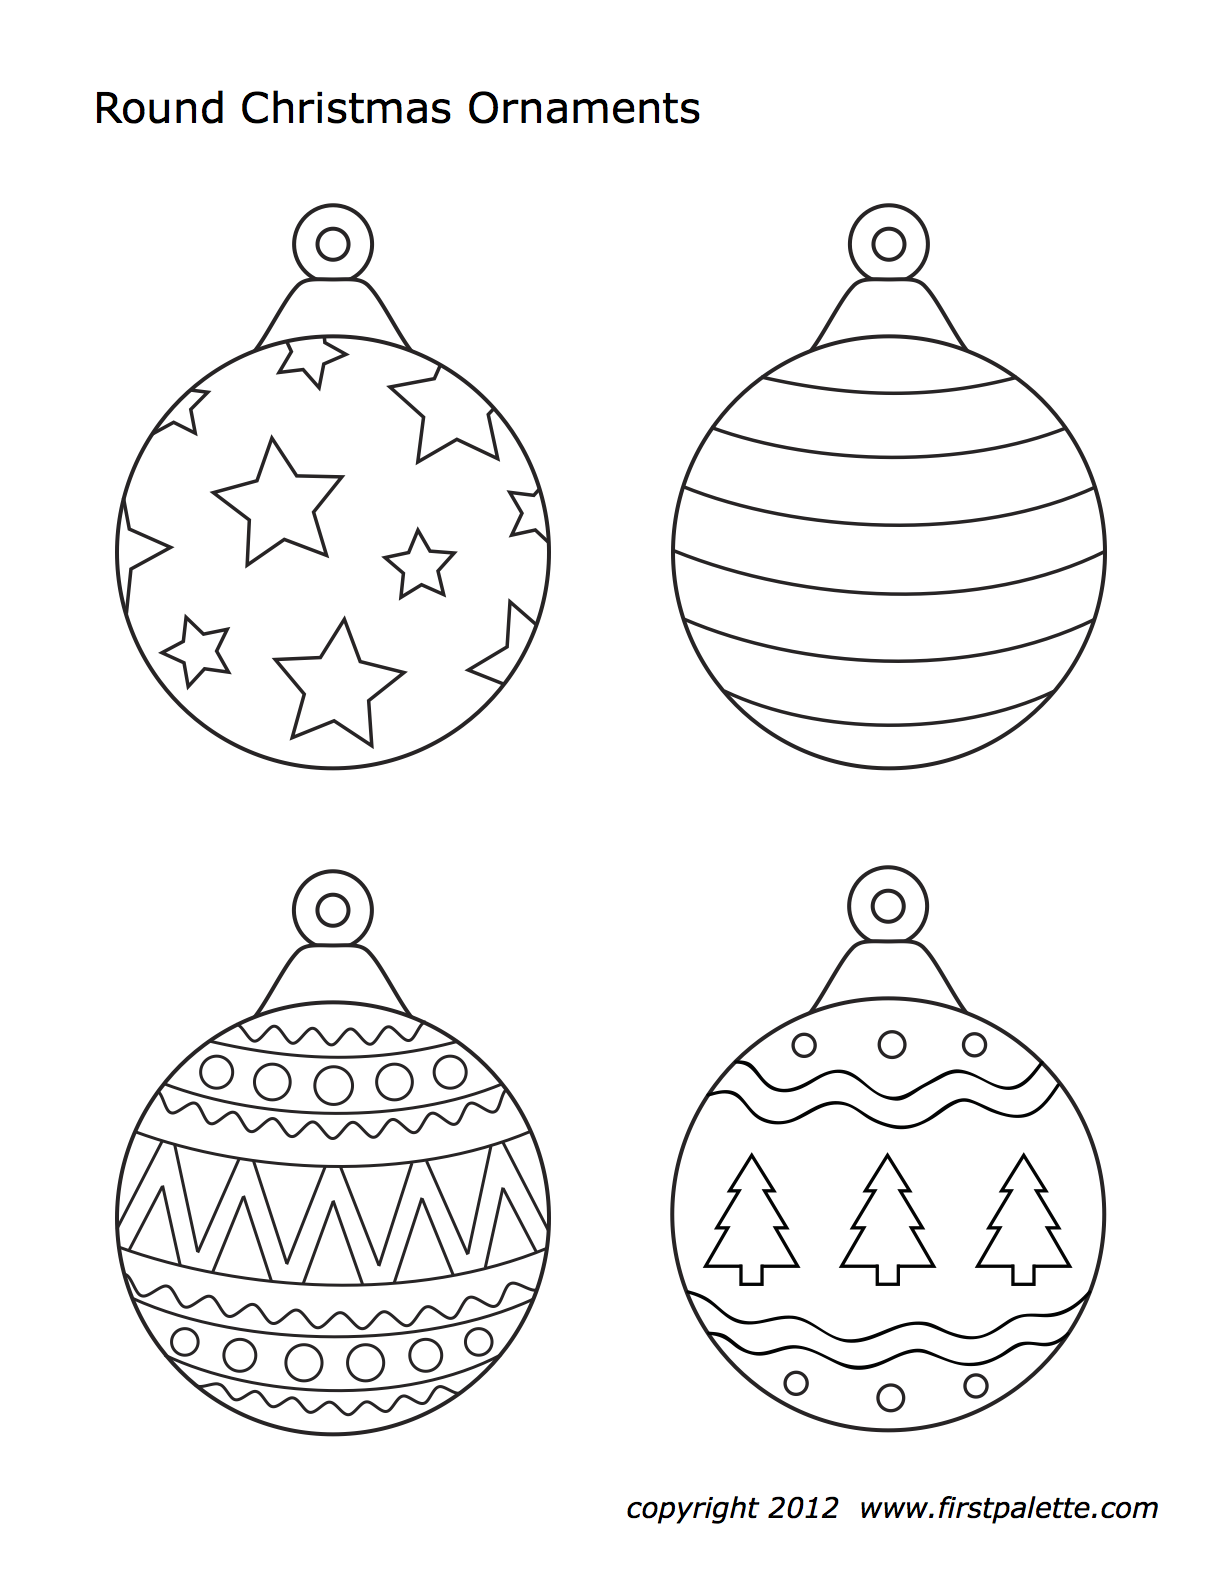 Christmas Ornaments Christmas Ornament Template Christmas Tree Coloring Page Printable Christmas Coloring Pages